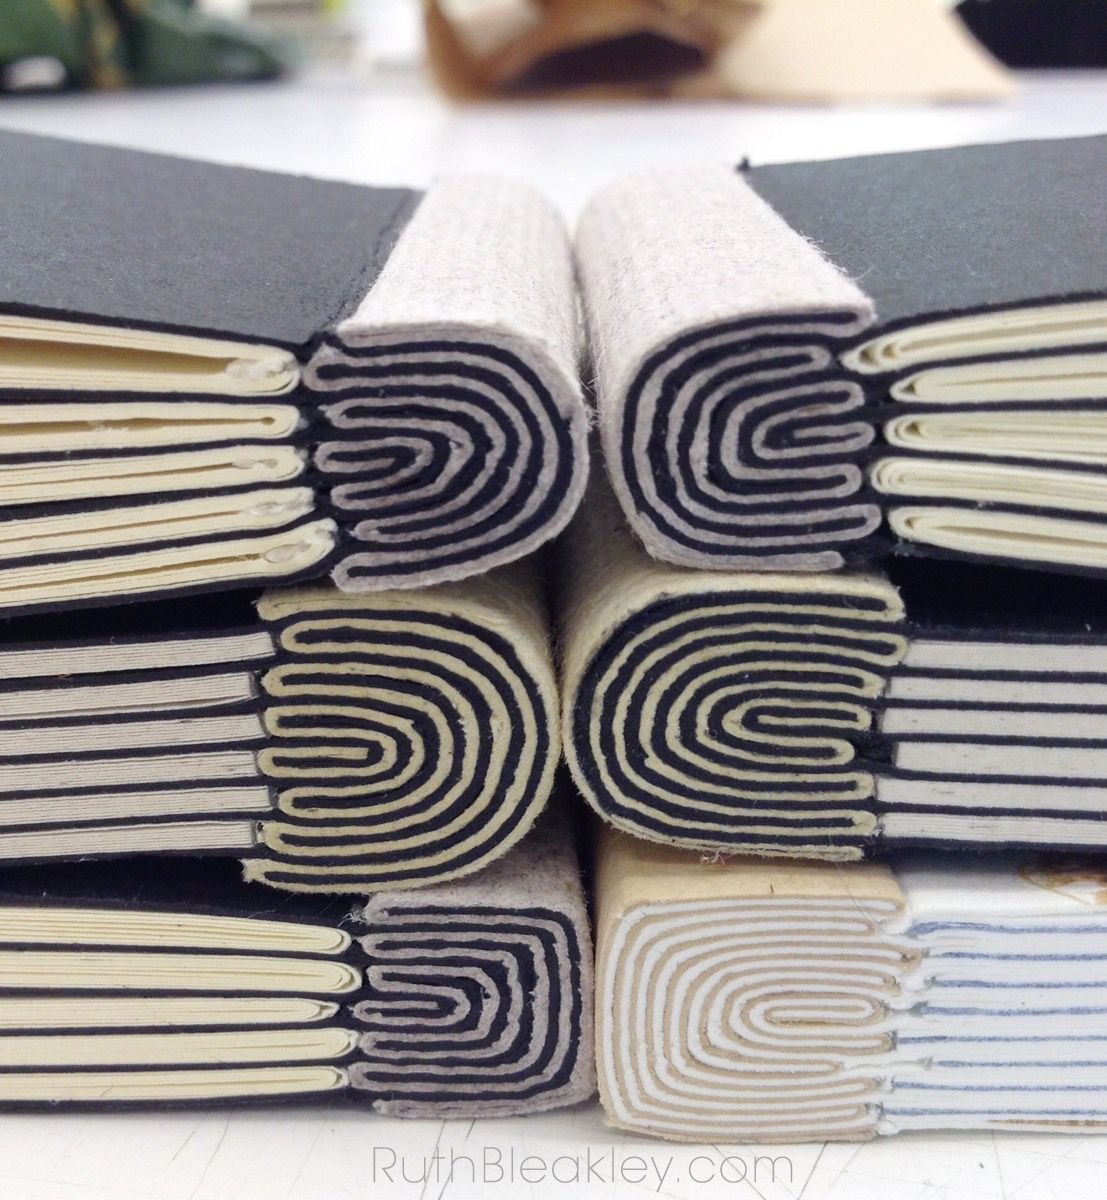 Photo of Onionskin Bookbinding class at Penland School of Crafts